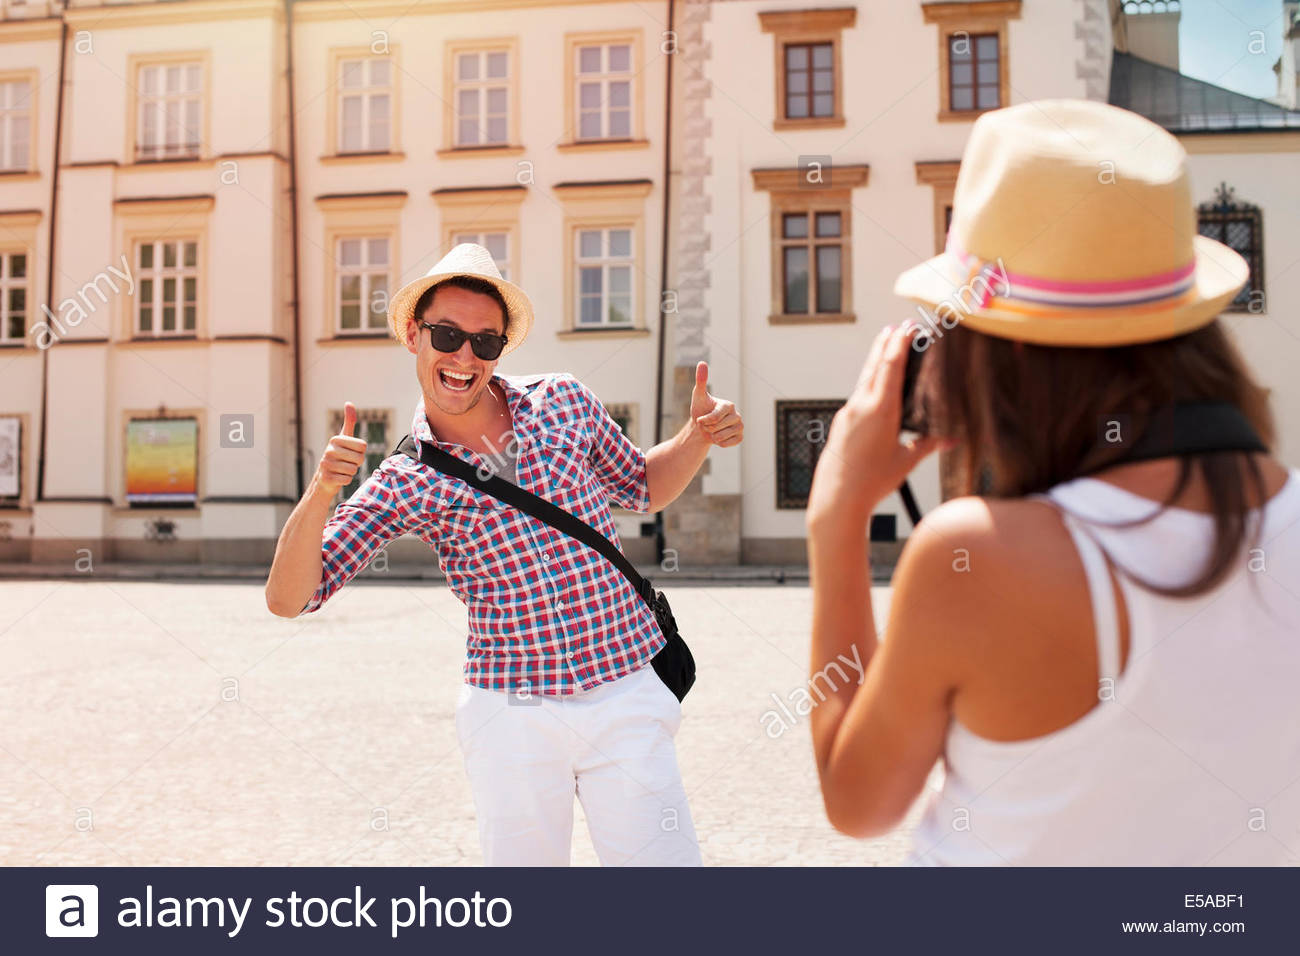 Funny Man Posing For A Photo Stock Photos Funny Man Posing For A 1300x956